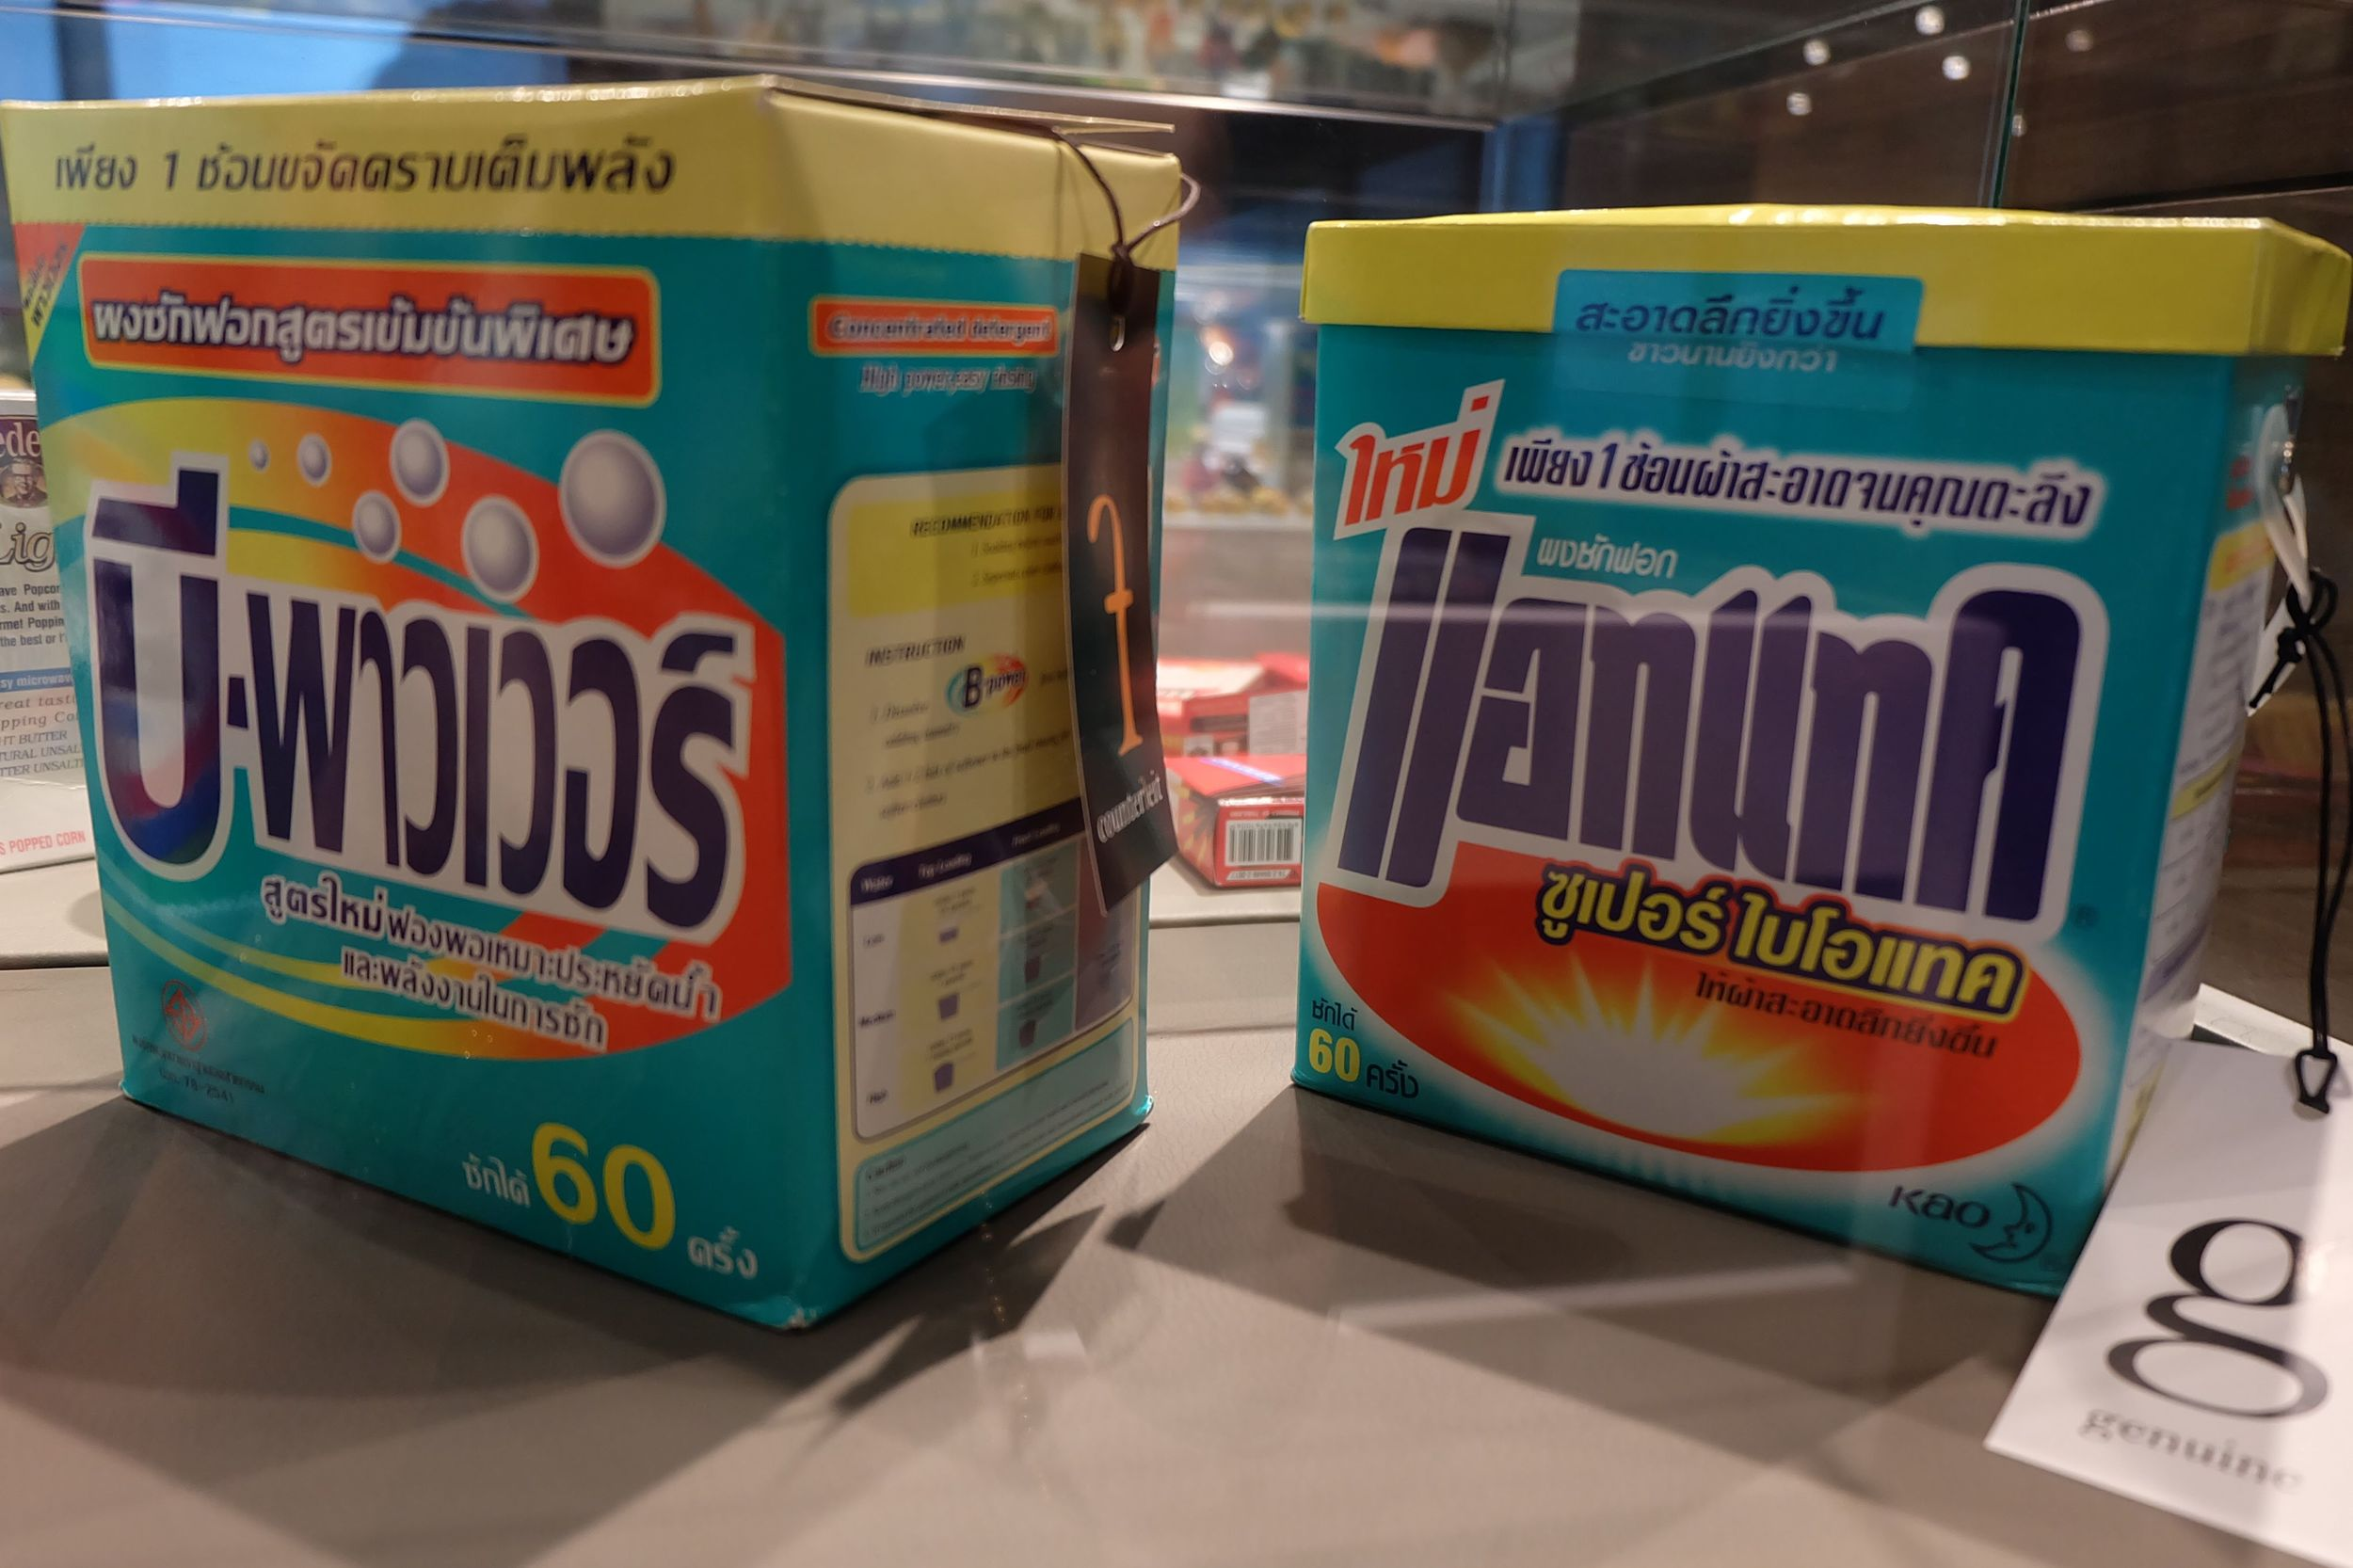 Real (right) and fake (left) laundry detergent